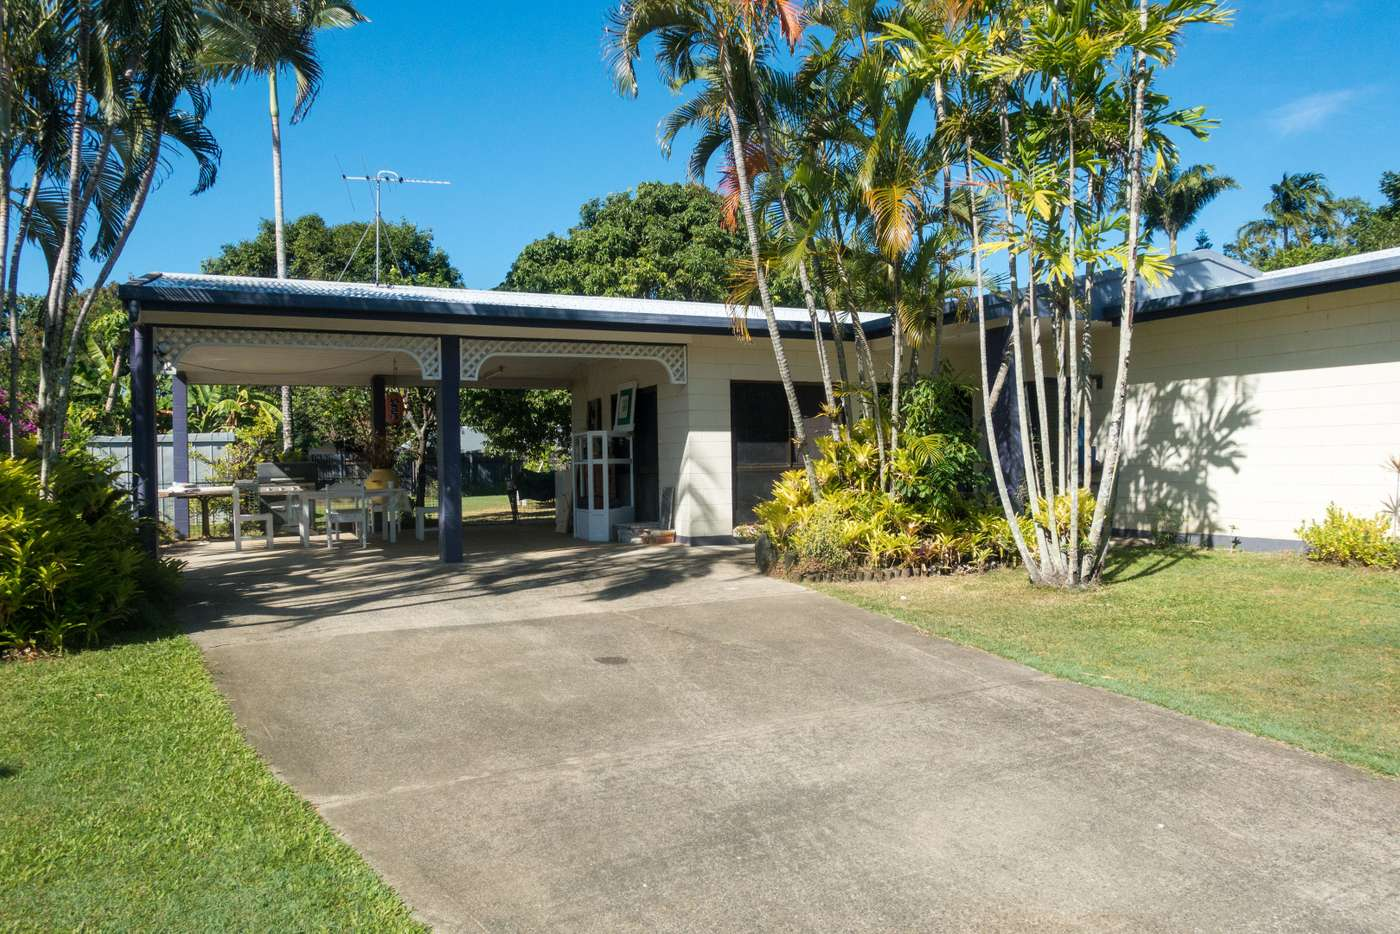 Main view of Homely house listing, 36 Cottesloe Drive, Kewarra Beach QLD 4879